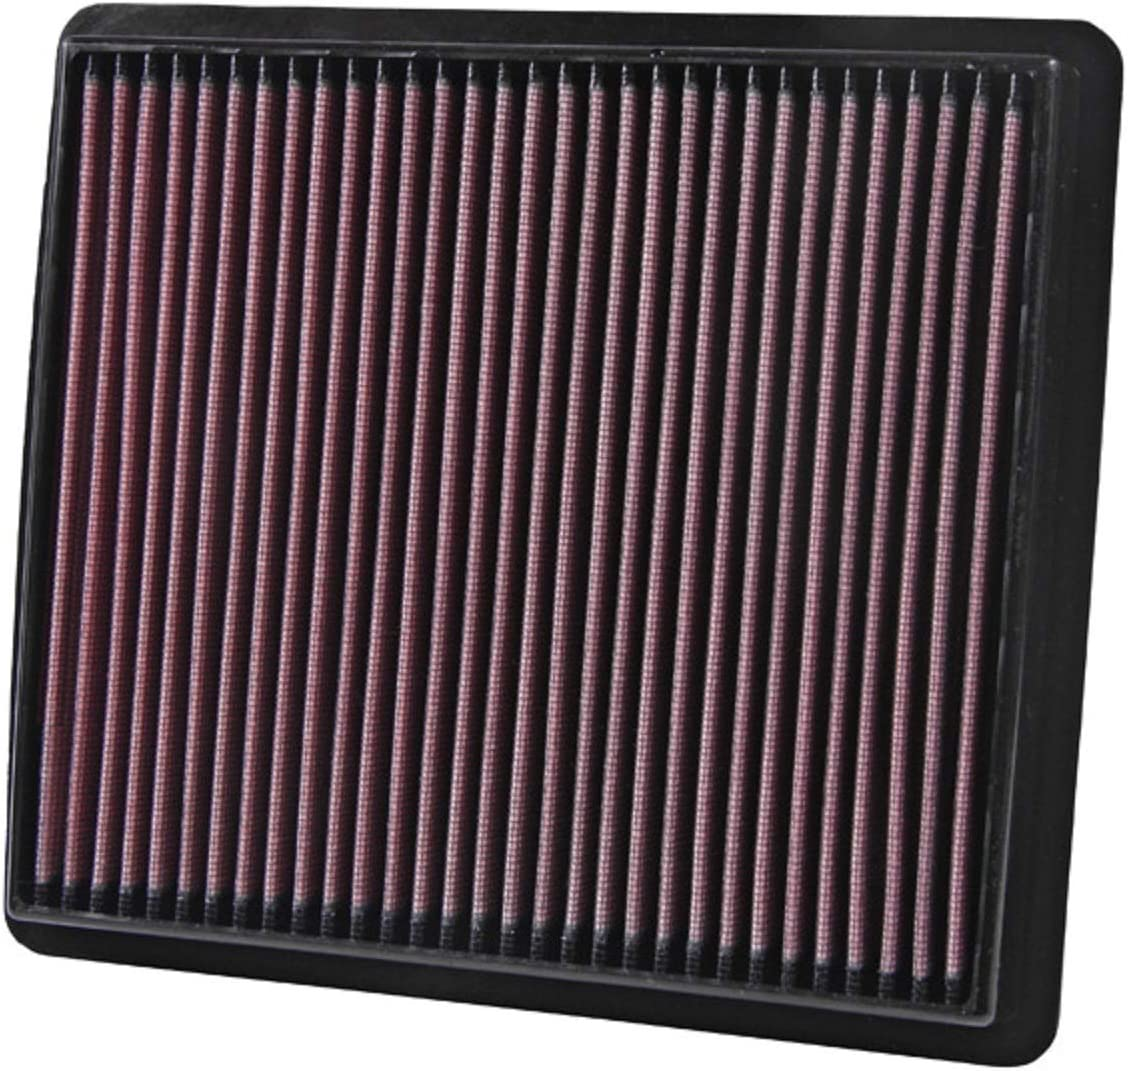 K&N Engine Air Filter: High Performance, Premium, Washable, Replacement Filter: 2008-2019 DODGE/FIAT (Journey, JCUV, Freemont) , 33-2423